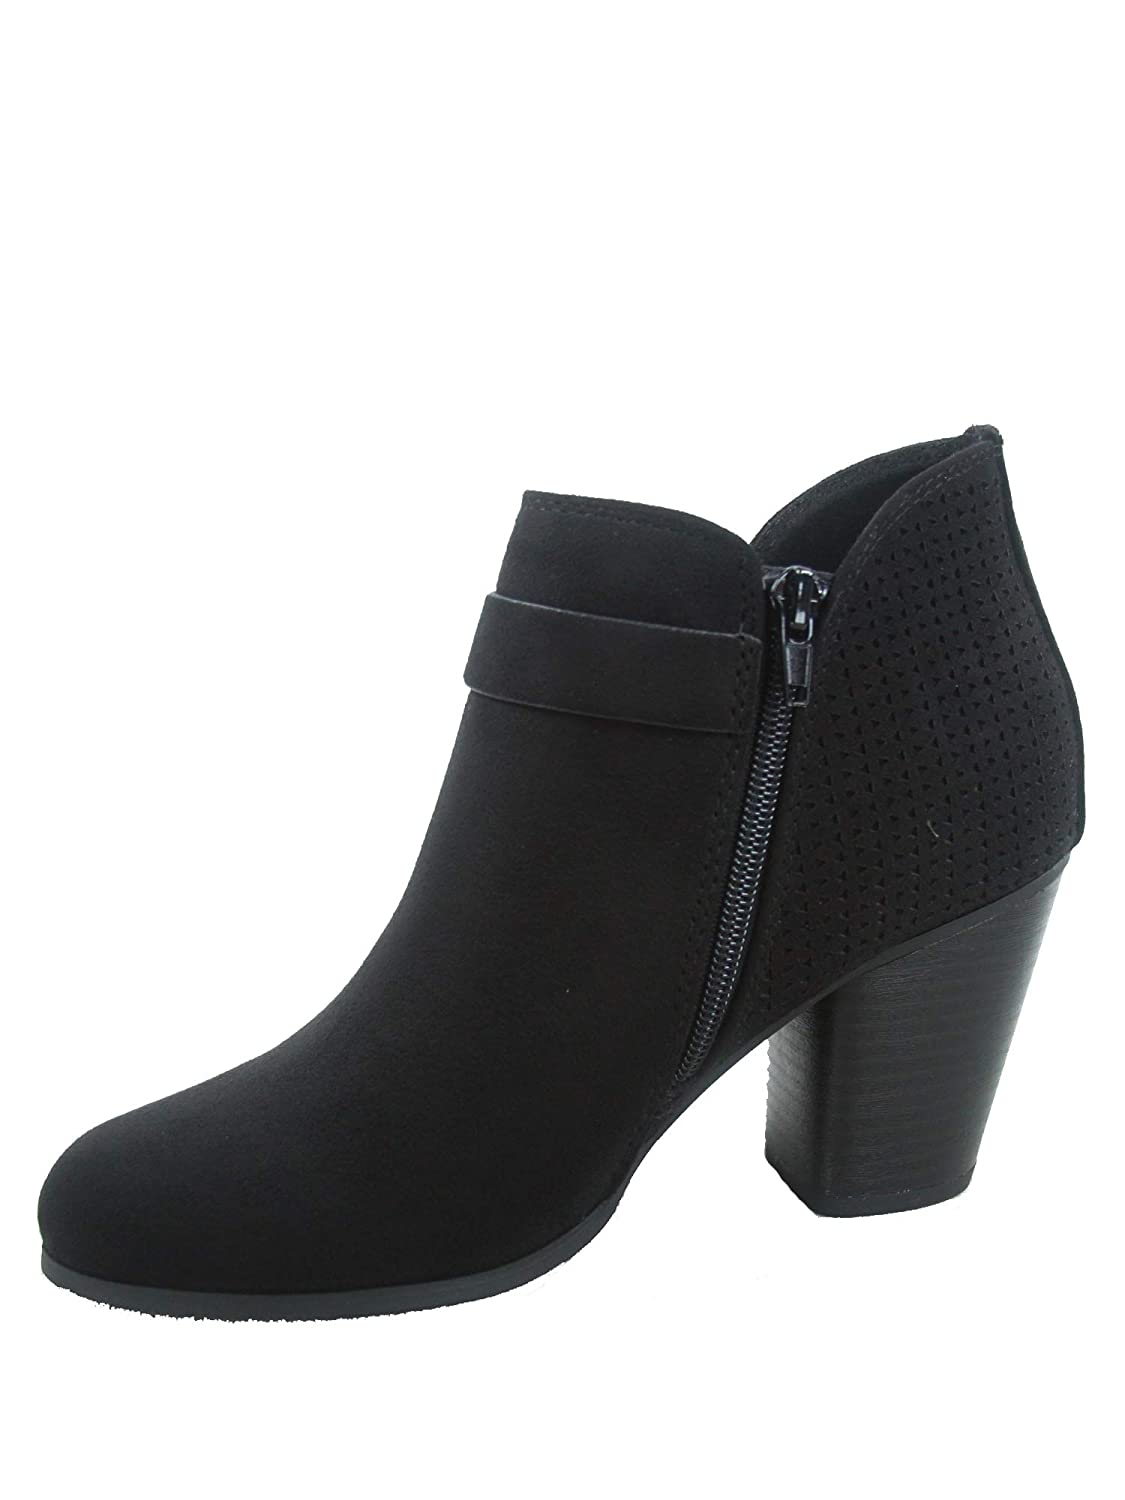 FZ-Iceage-s Womens Stylish Almond Toe Mid-Heel Zipper Buckle Ankle Booties Shoes Black